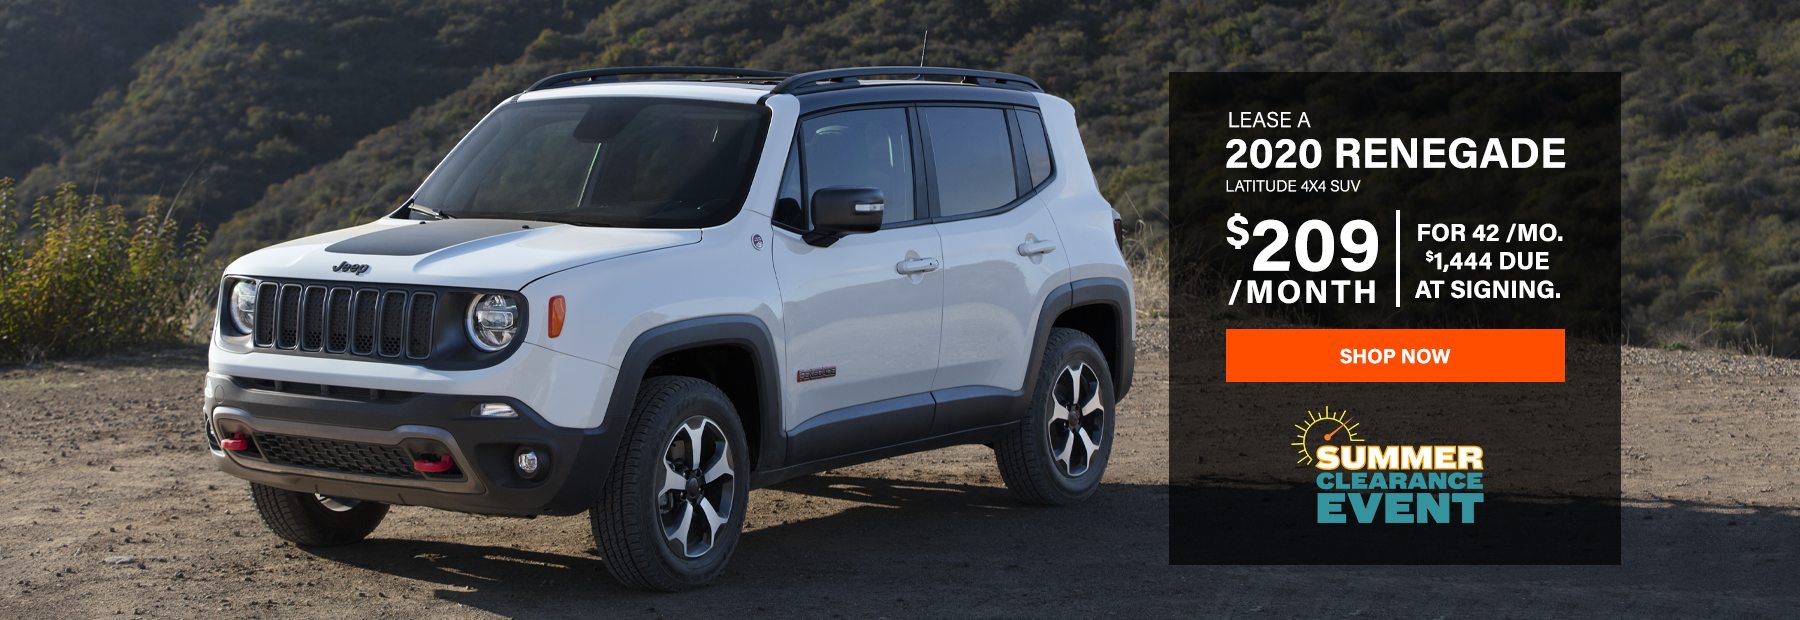 Lease a 2020 Jeep Renegade